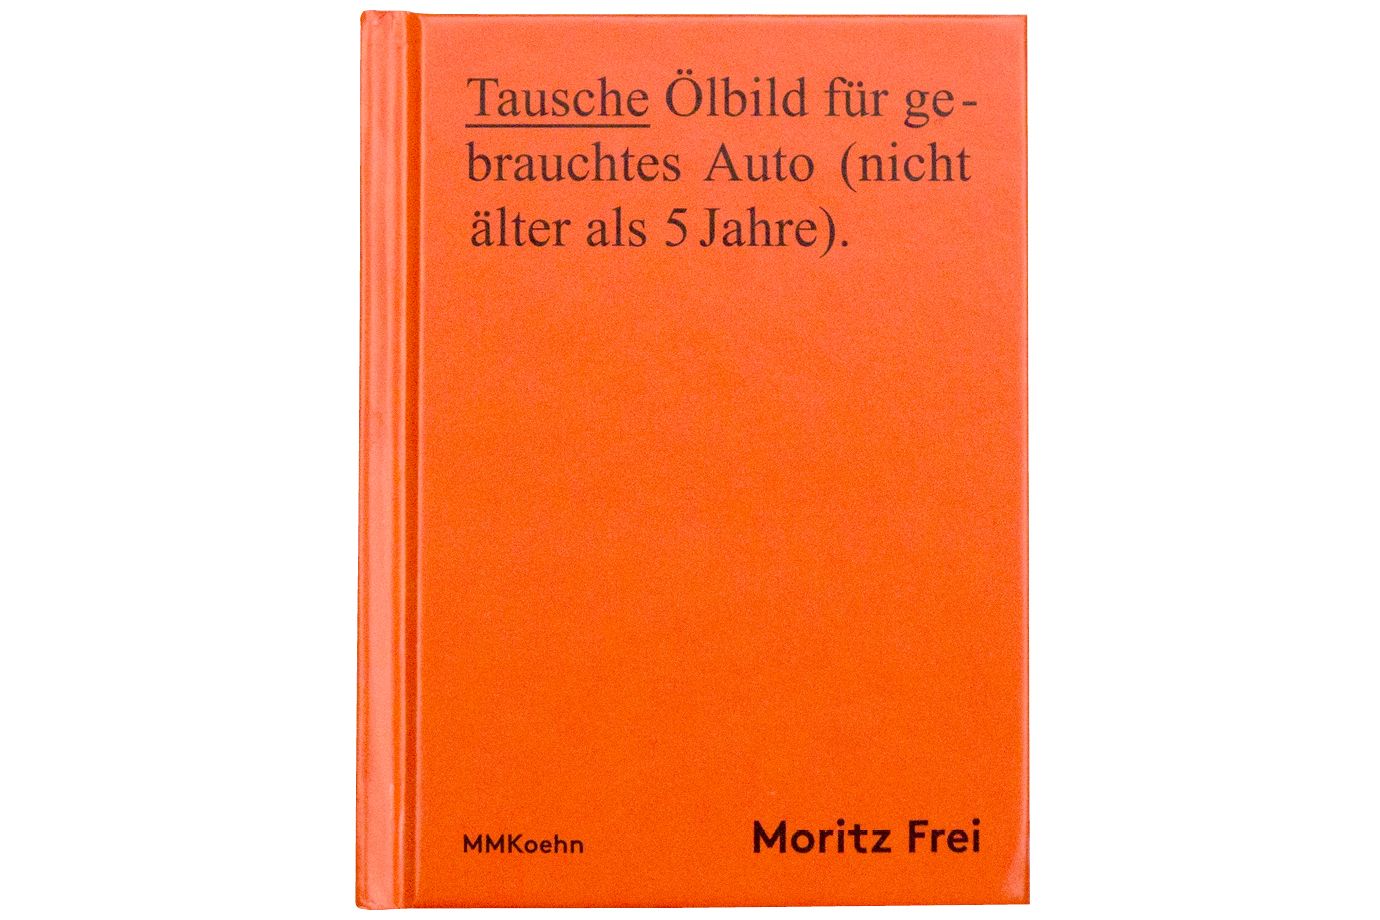 http://e-o-t.de/wordpress/wp-content/uploads/2017/06/2014_eot-Frei-Book-NEU-.jpg